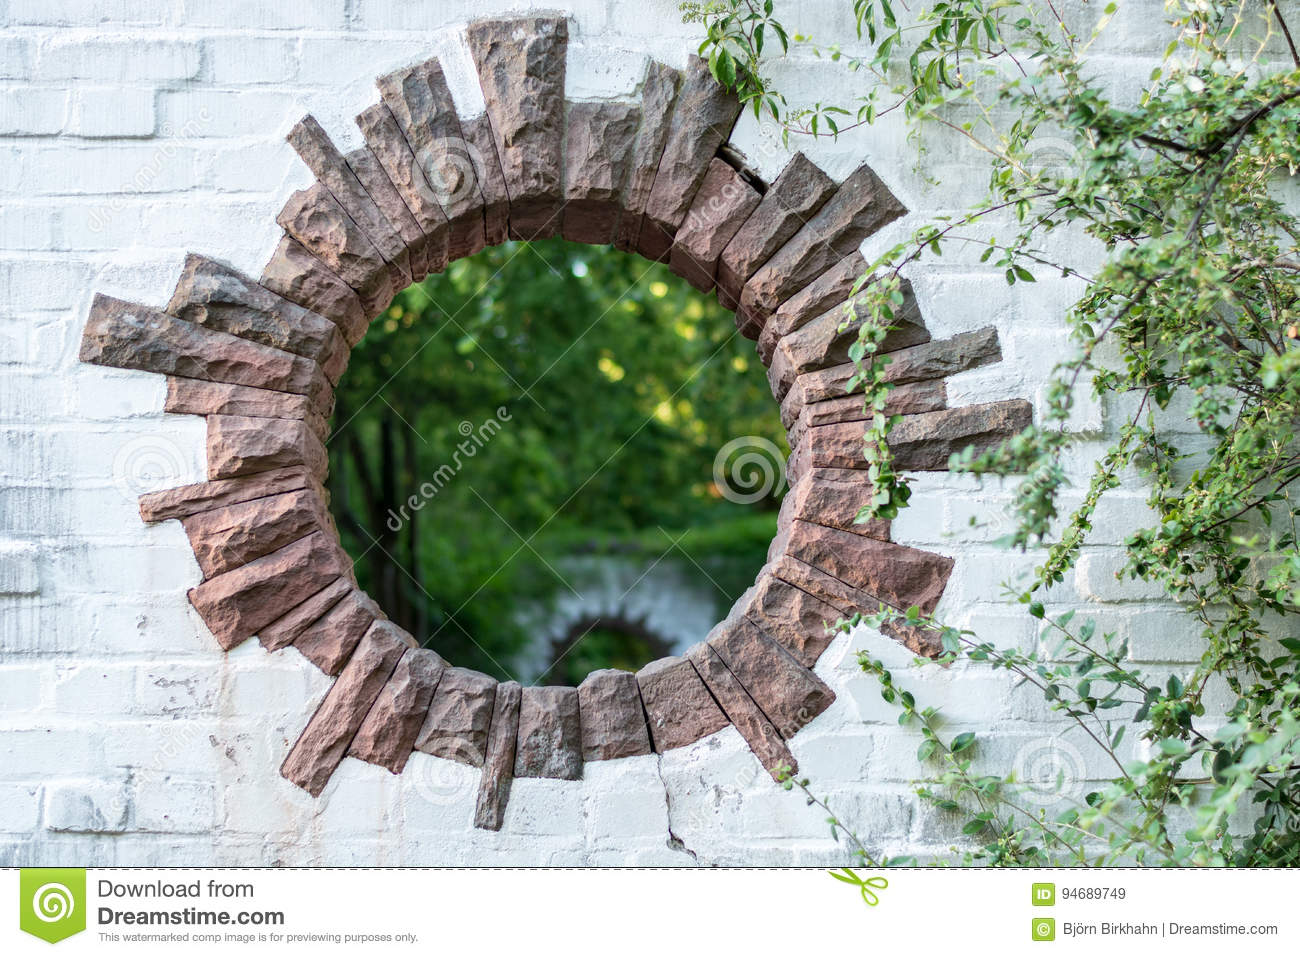 A round hole in a brick wall in a park looks like a portal